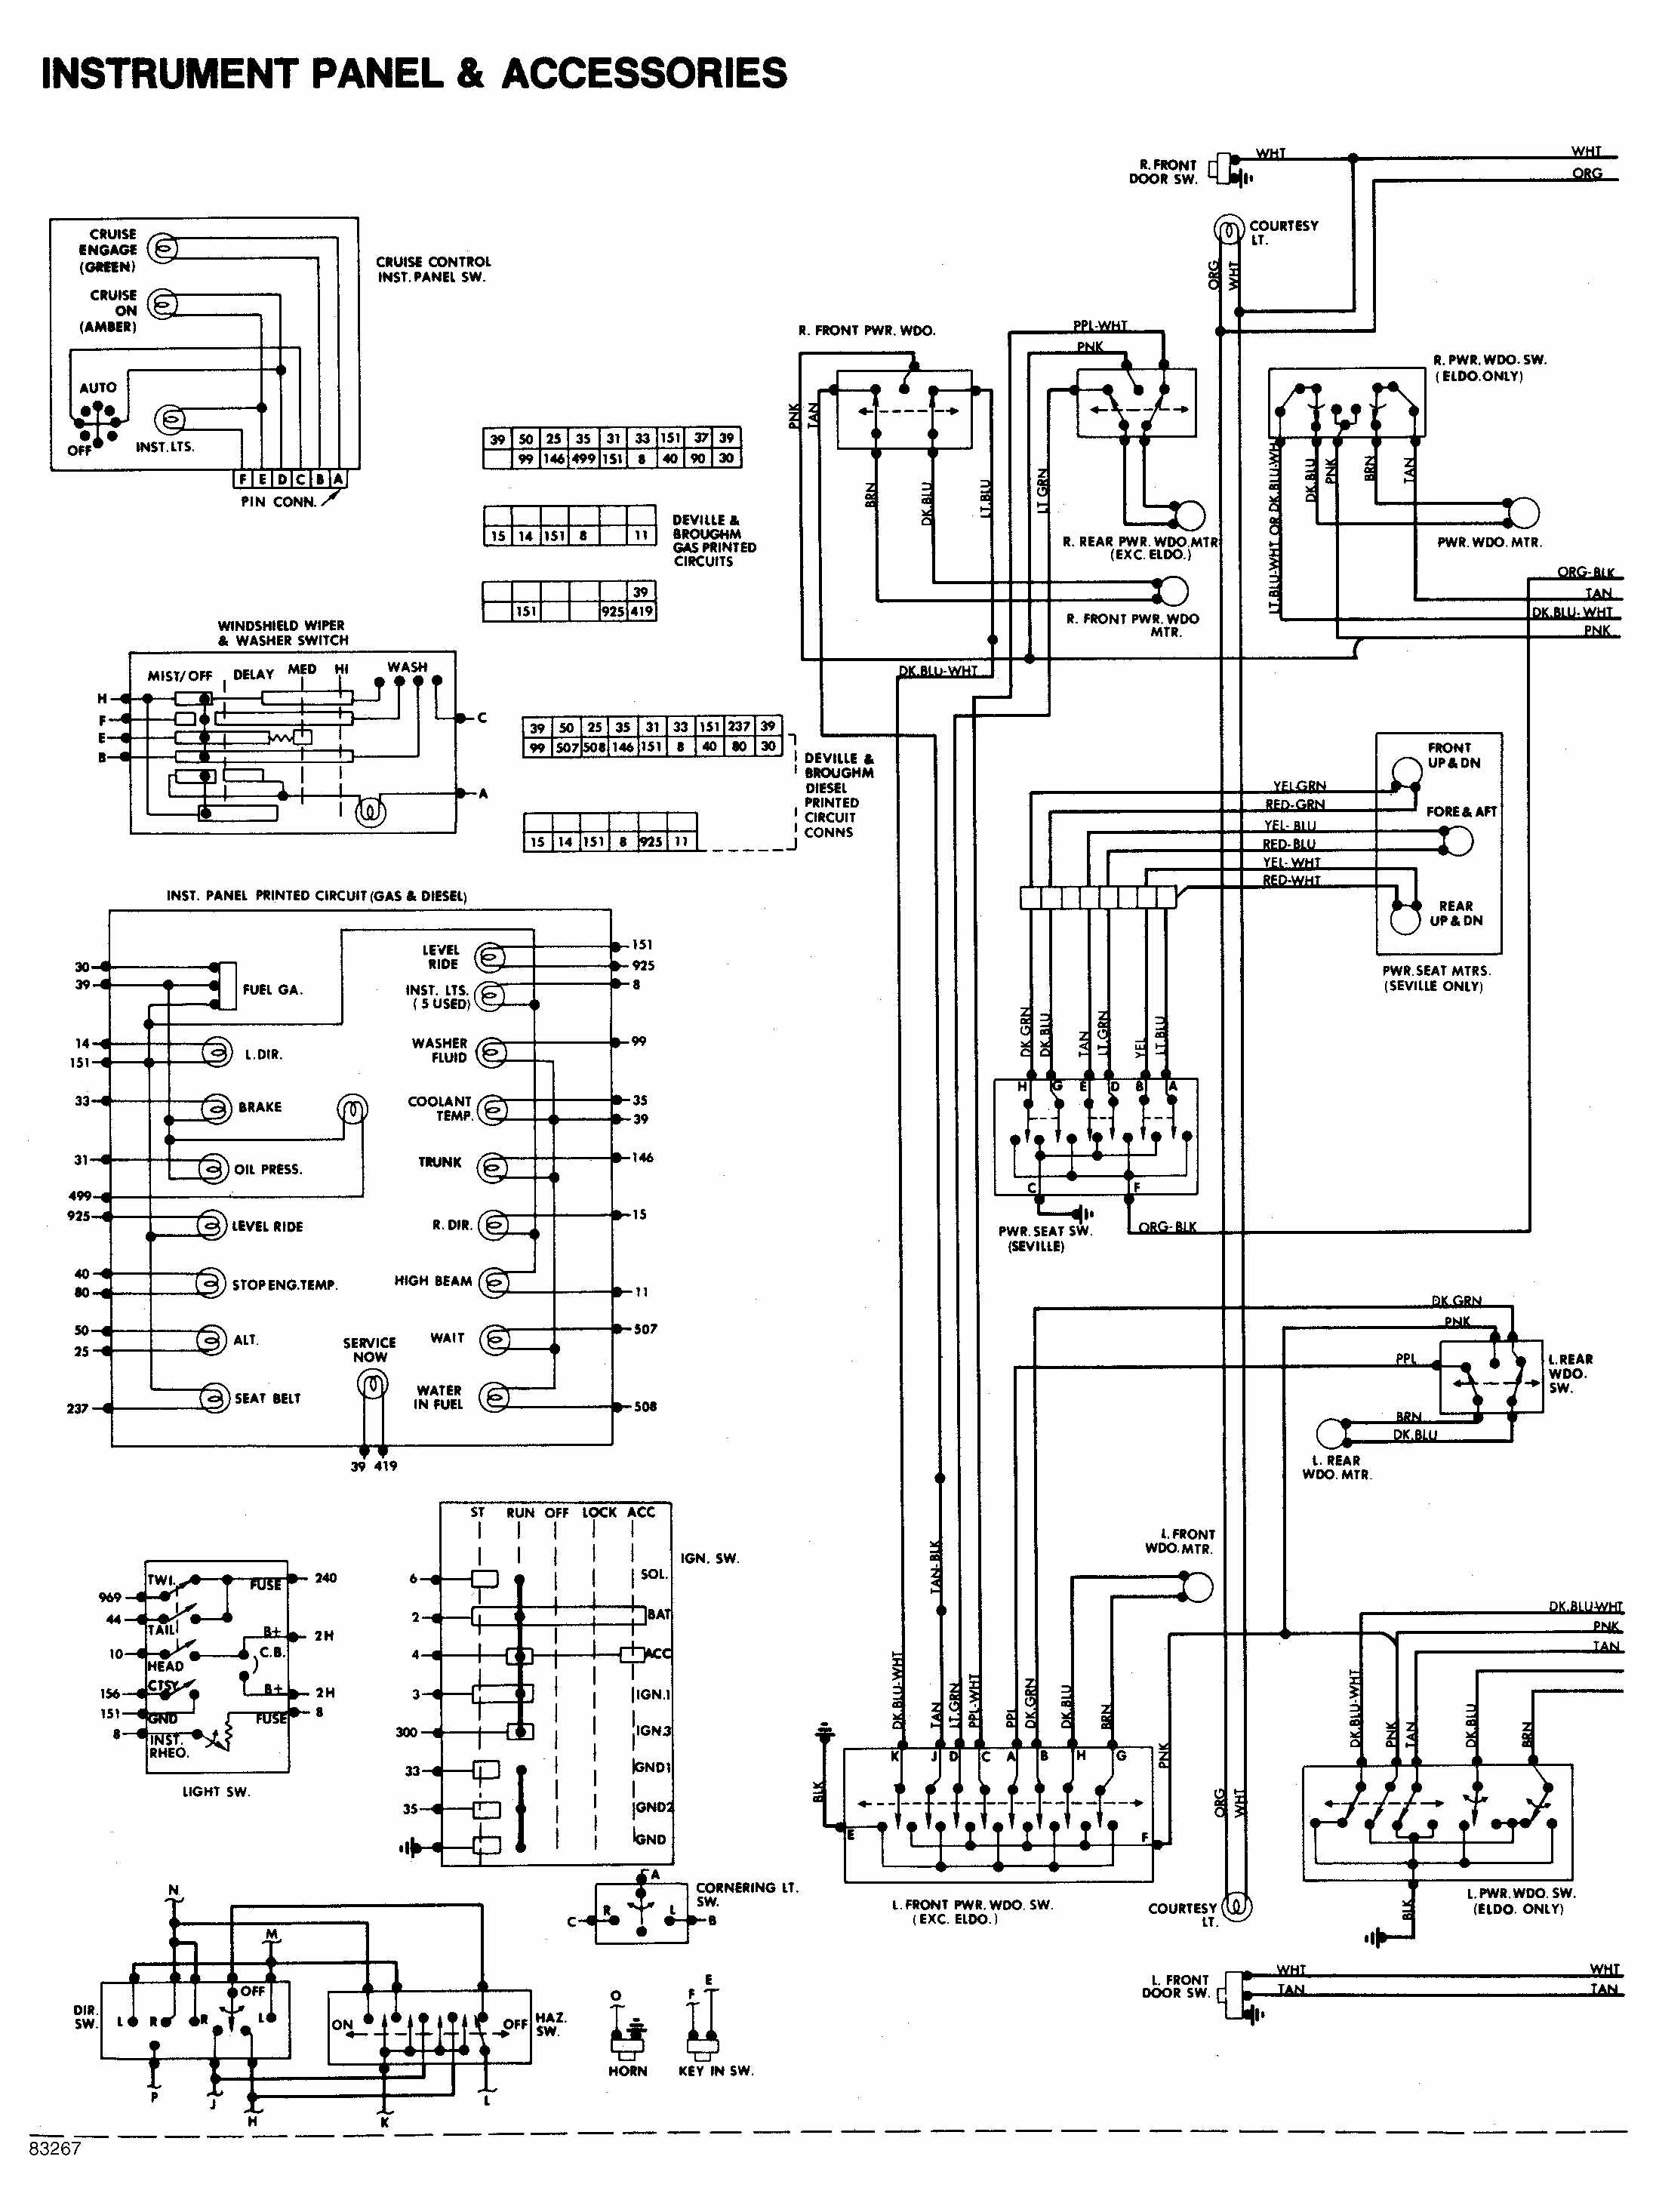 2016 dodge ram 1500 wiring diagram